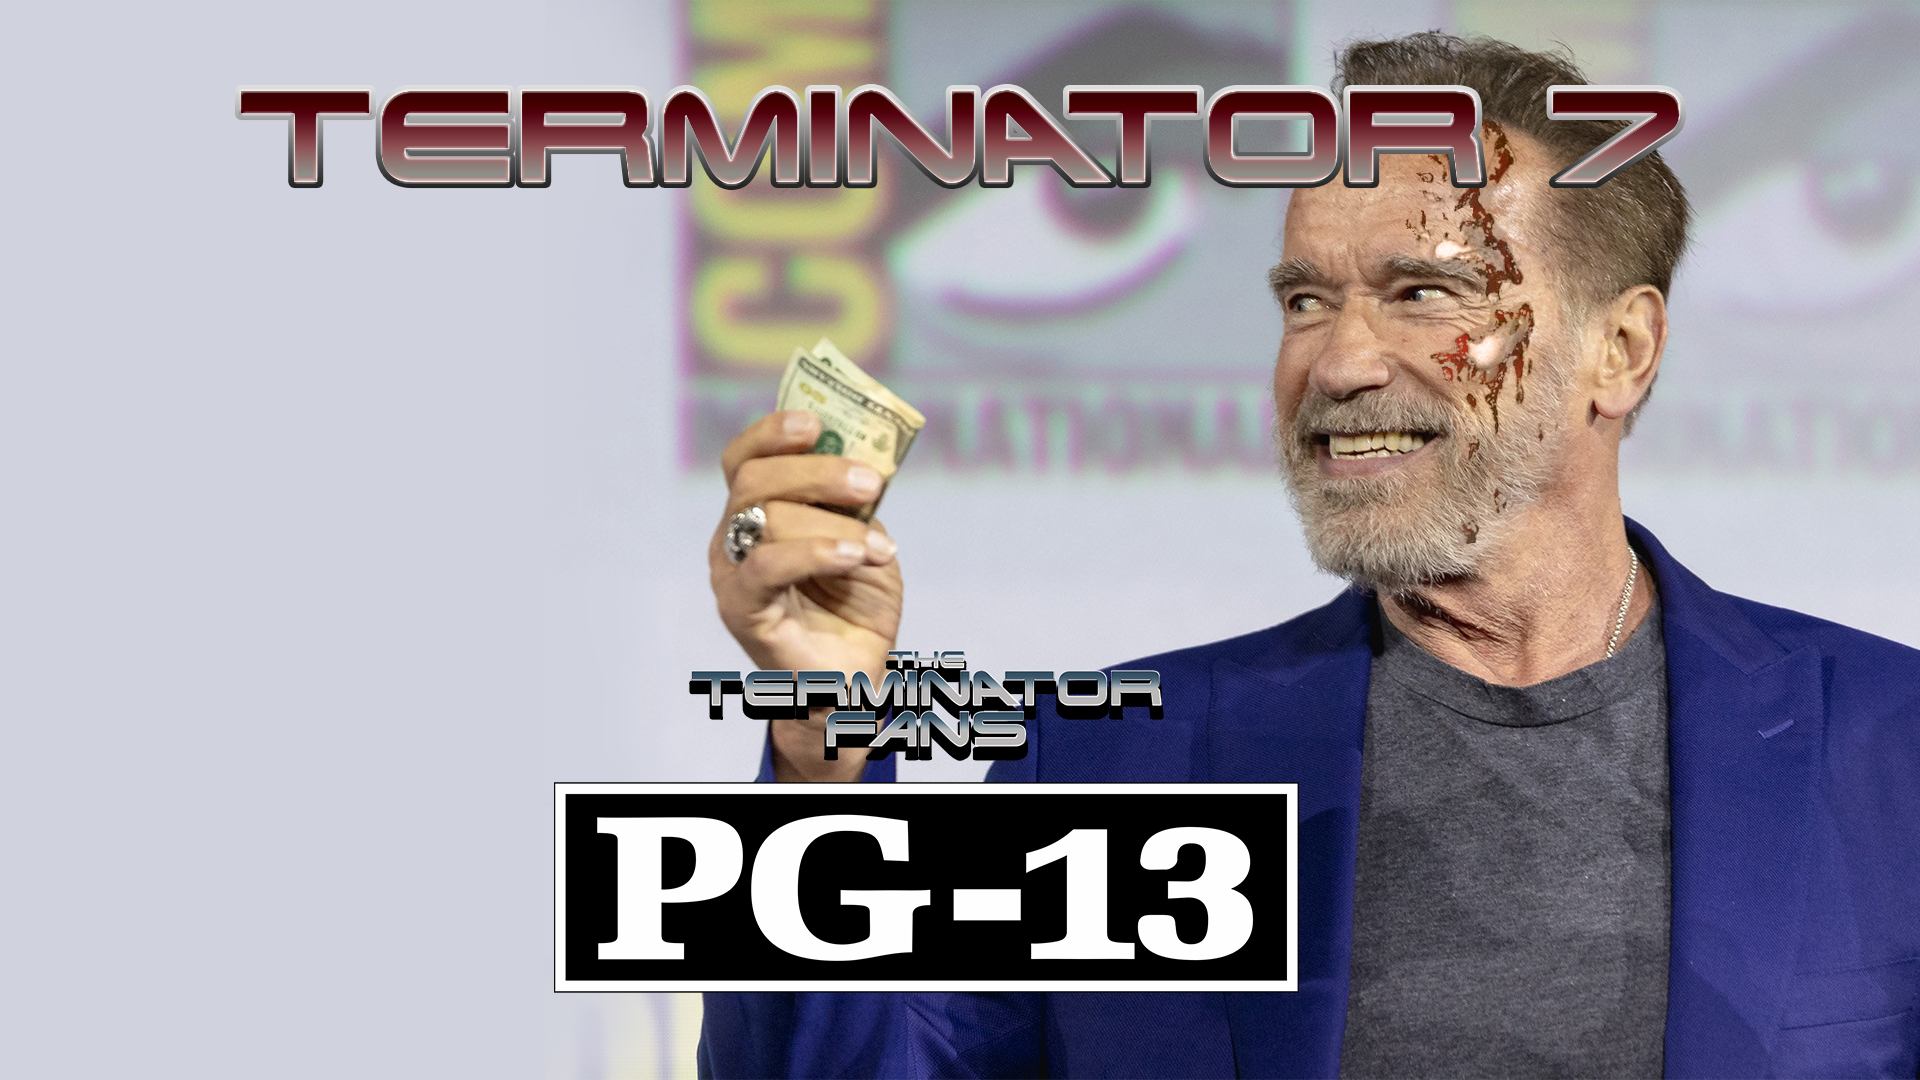 Terminator 7 To Be Rated PG-13?